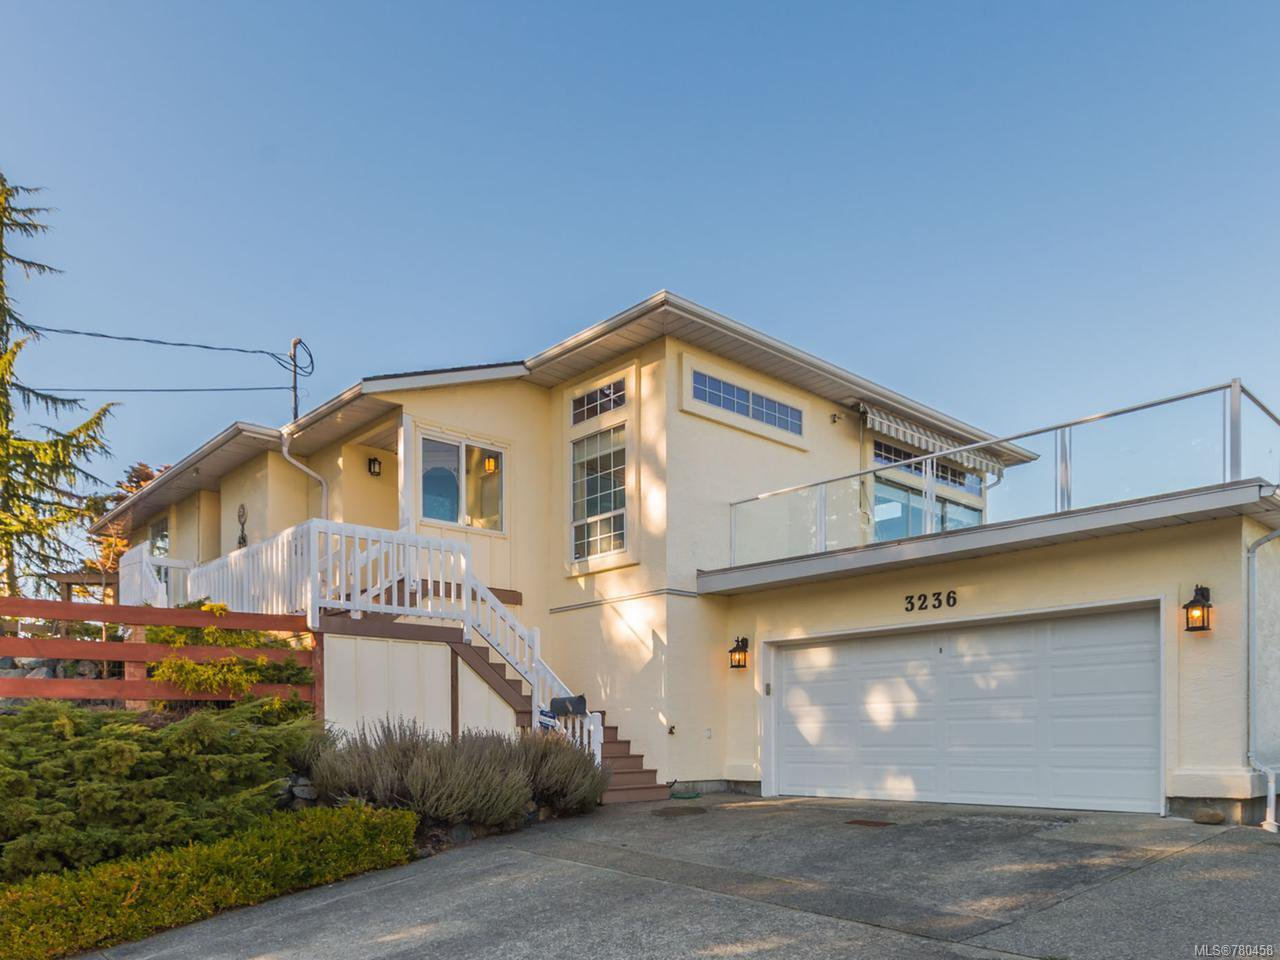 Main Photo: 3236 Lauren Mary Pl in NANAIMO: Na Departure Bay House for sale (Nanaimo)  : MLS®# 780458